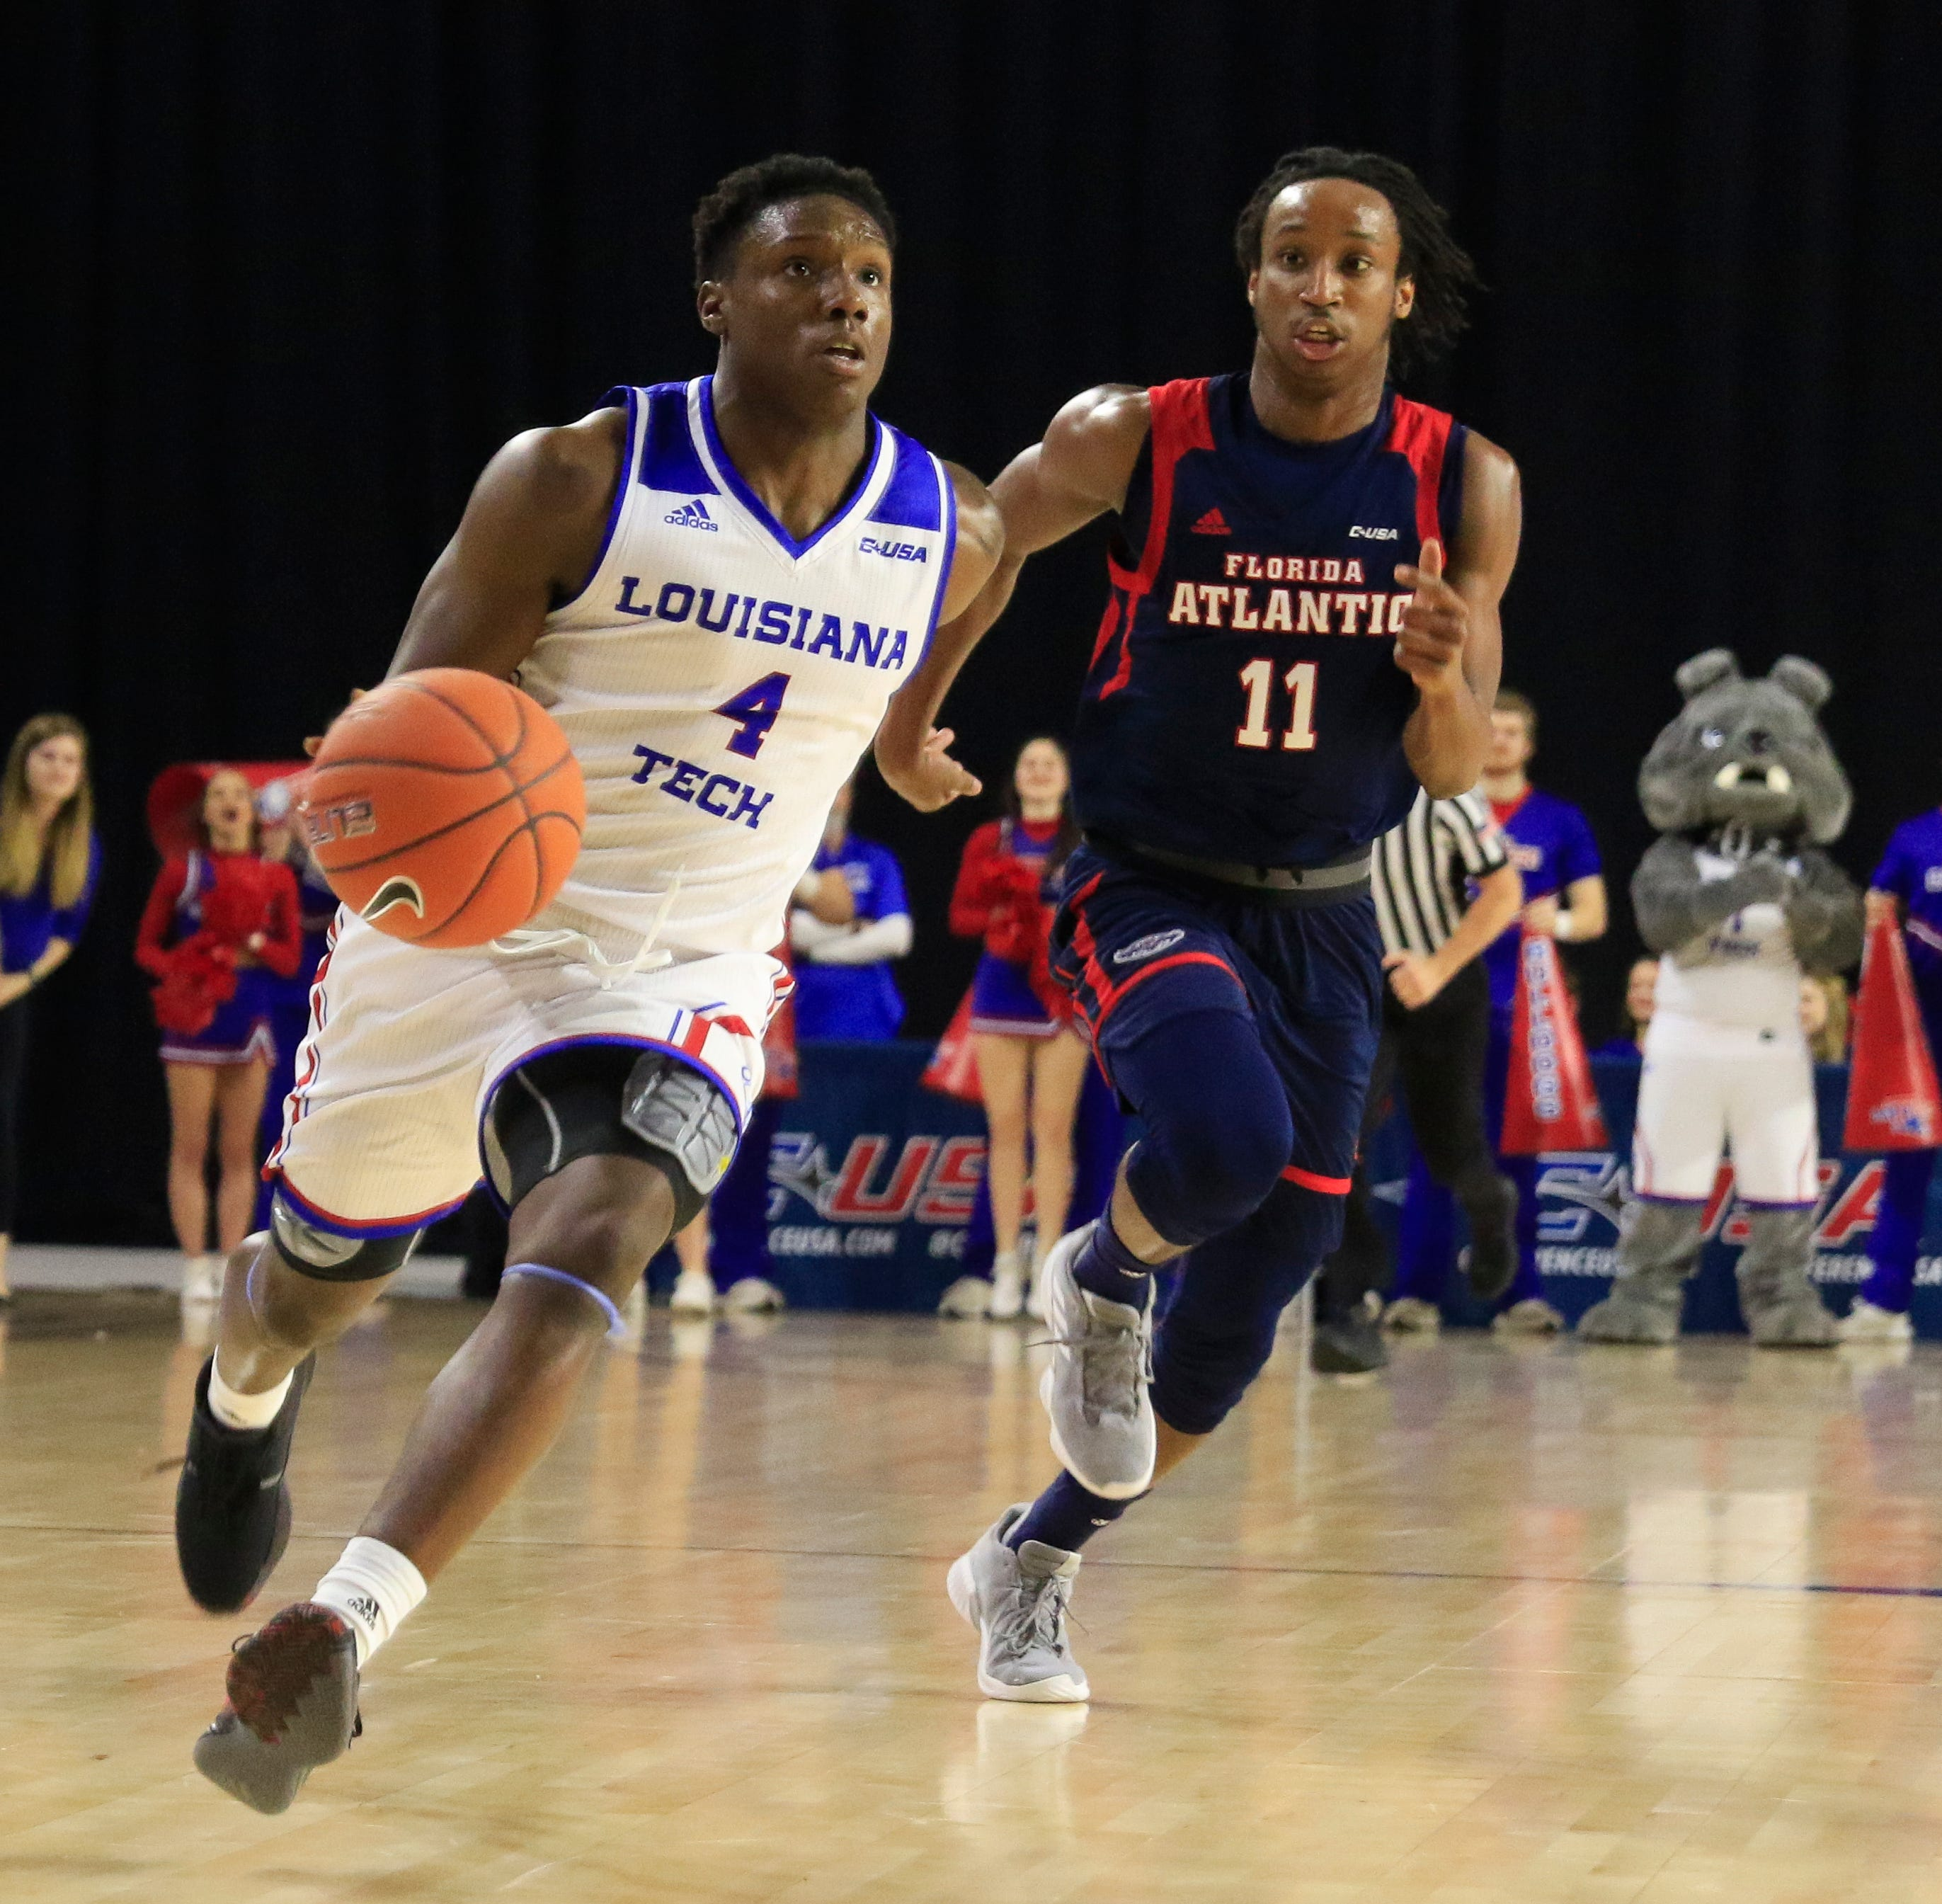 Bulldogs survive, move on at C-USA tourney